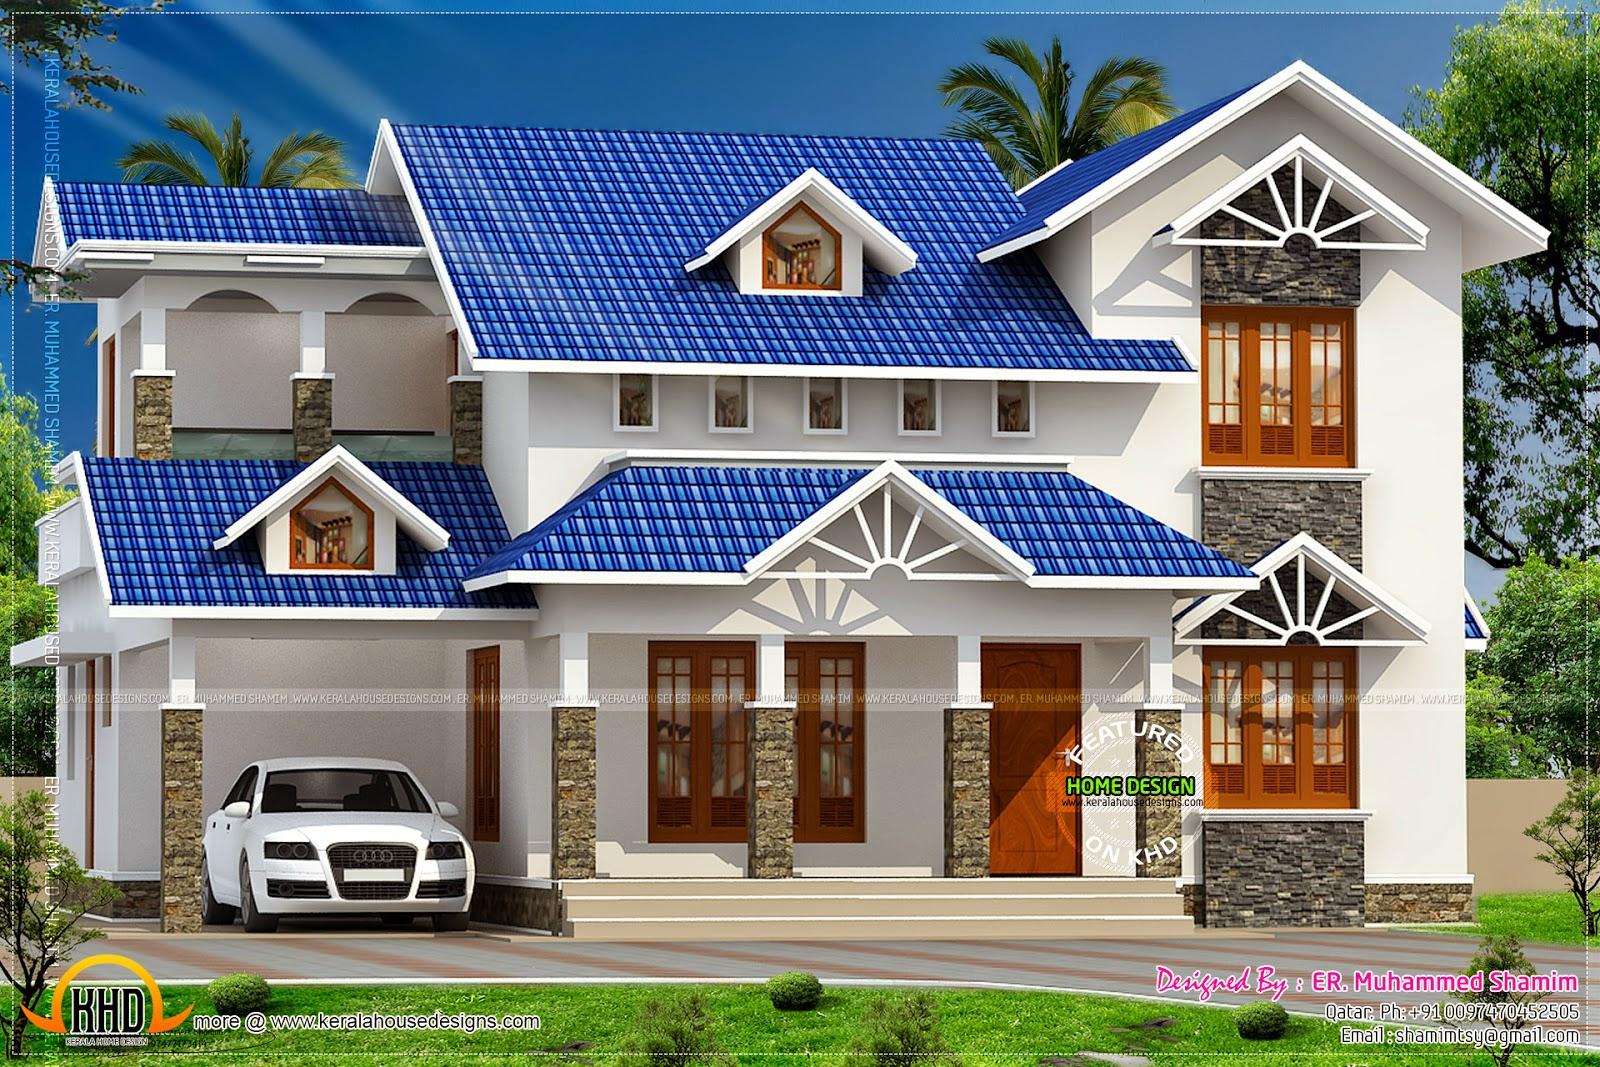 Nice sloped roof kerala home design kerala home design for Simple roof design house plans